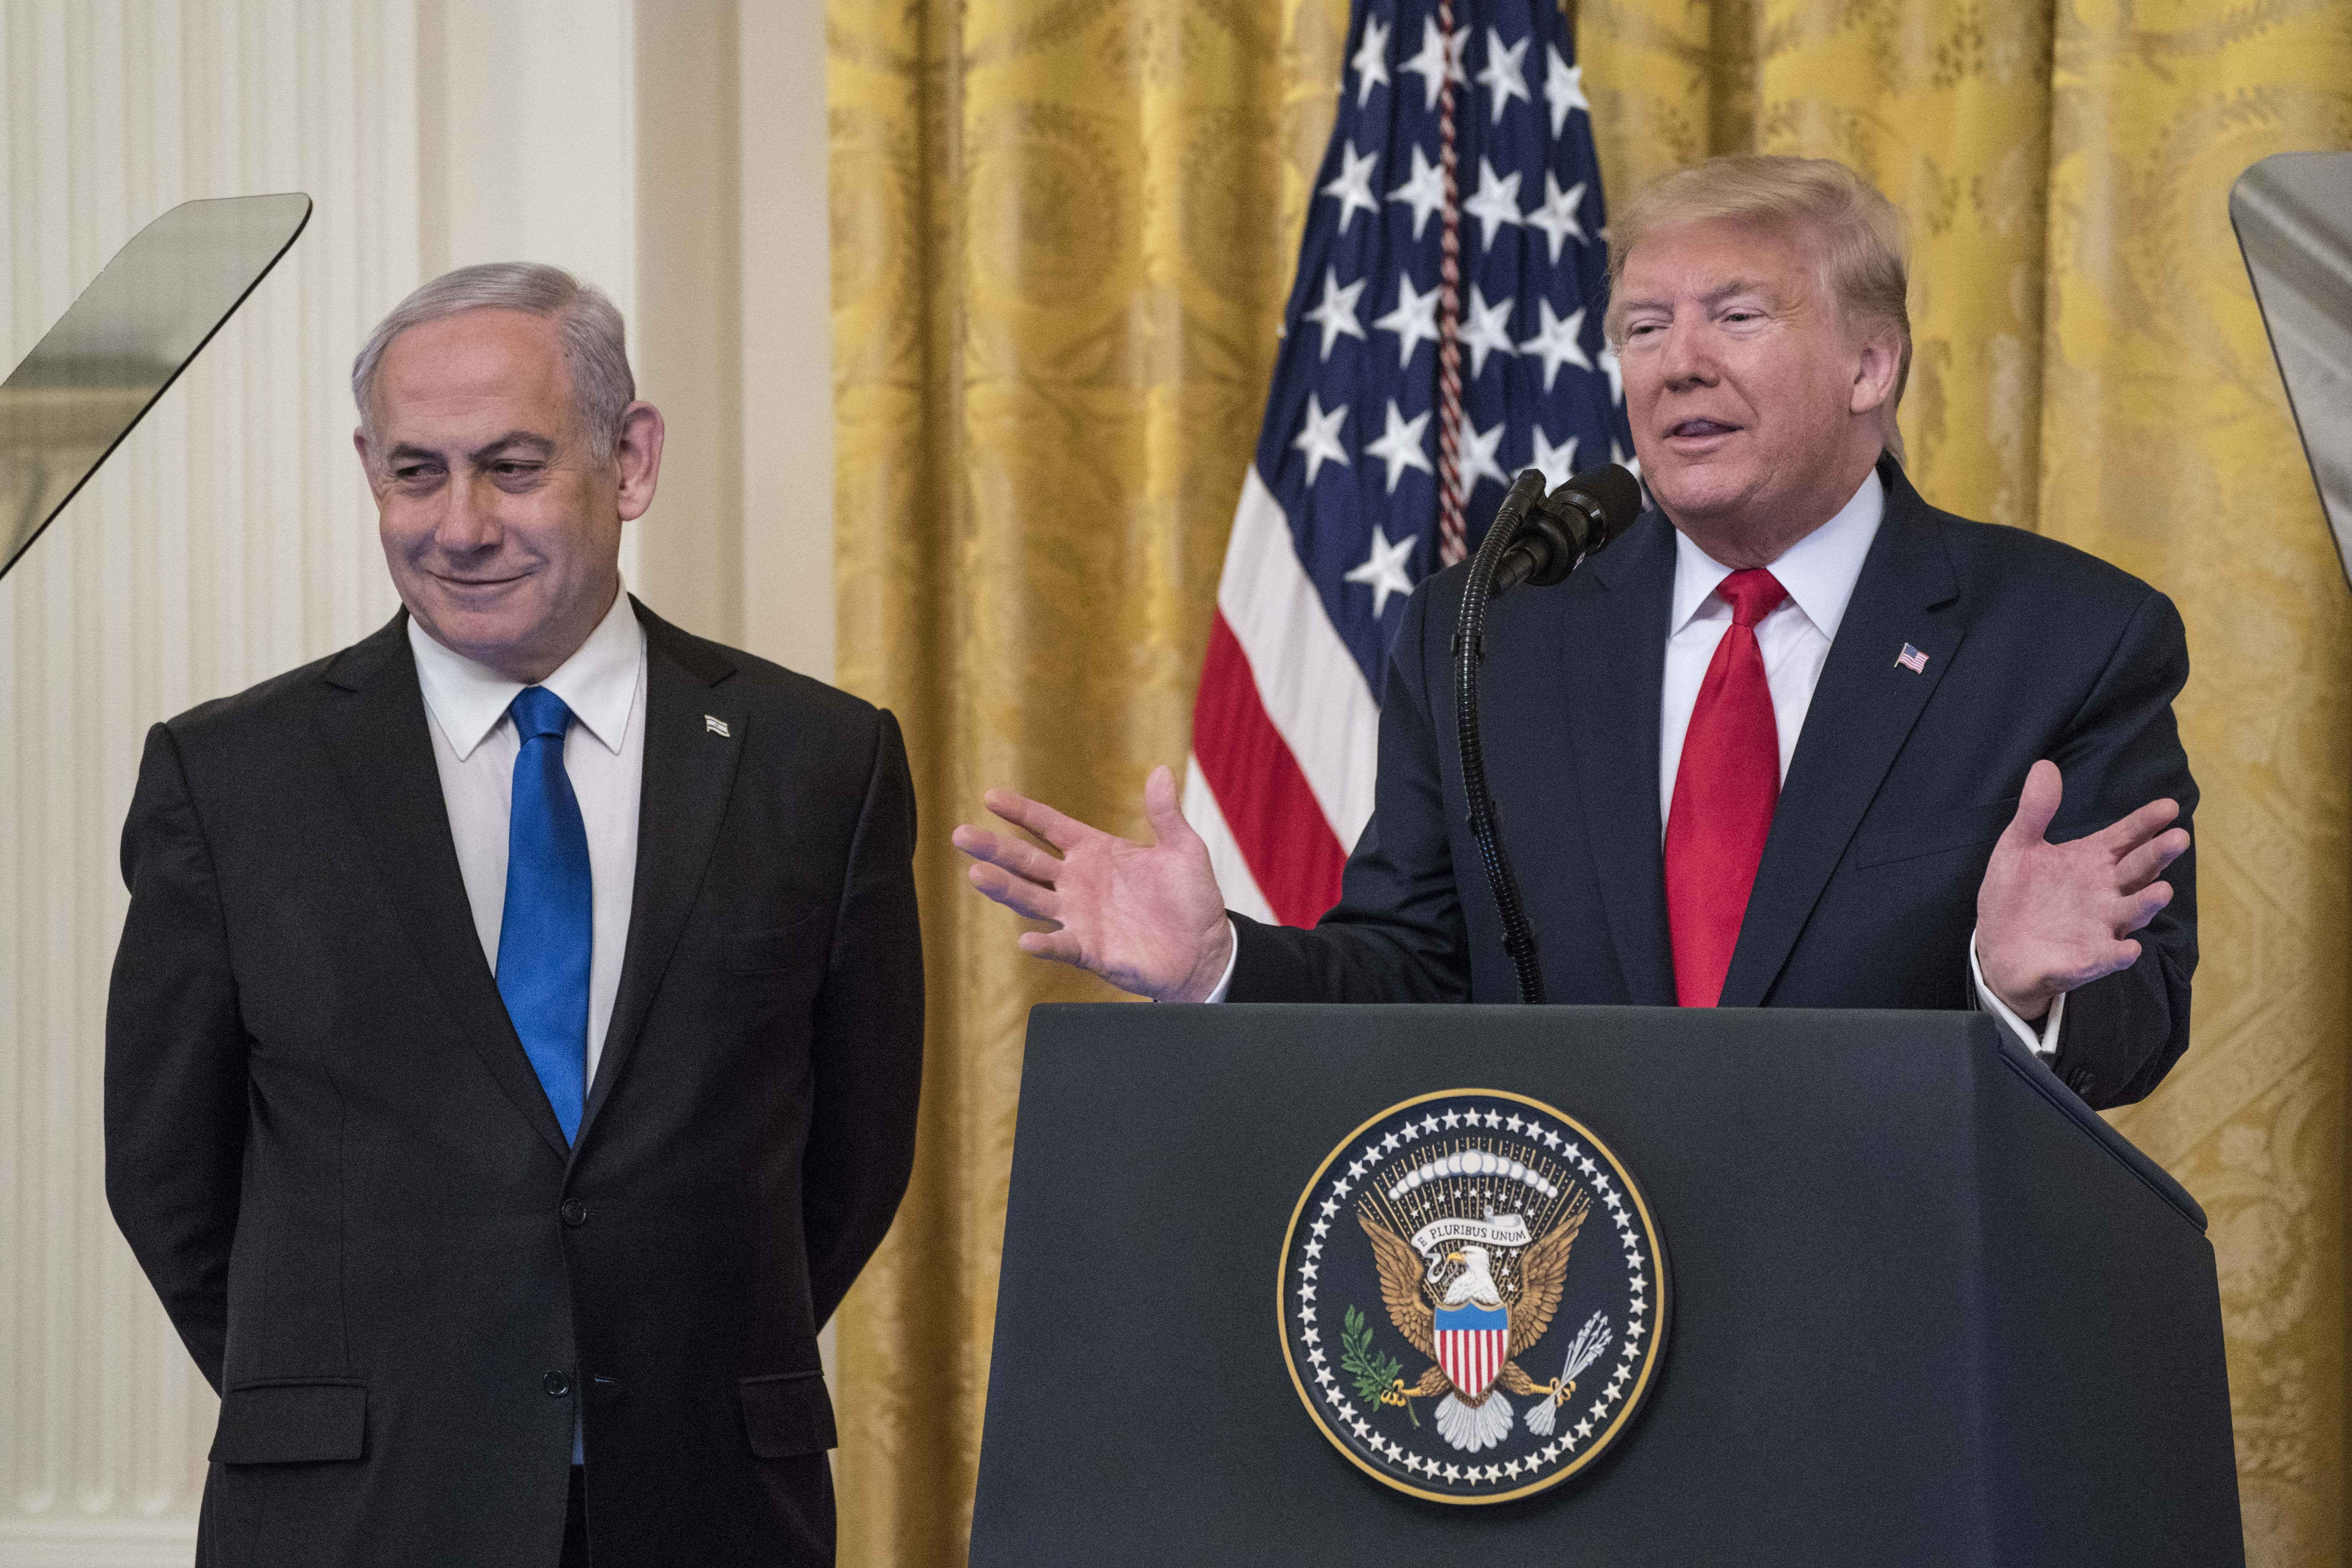 US, Israel have 'unique opportunity' in Middle East peace plan, but critics say deal is one-sided